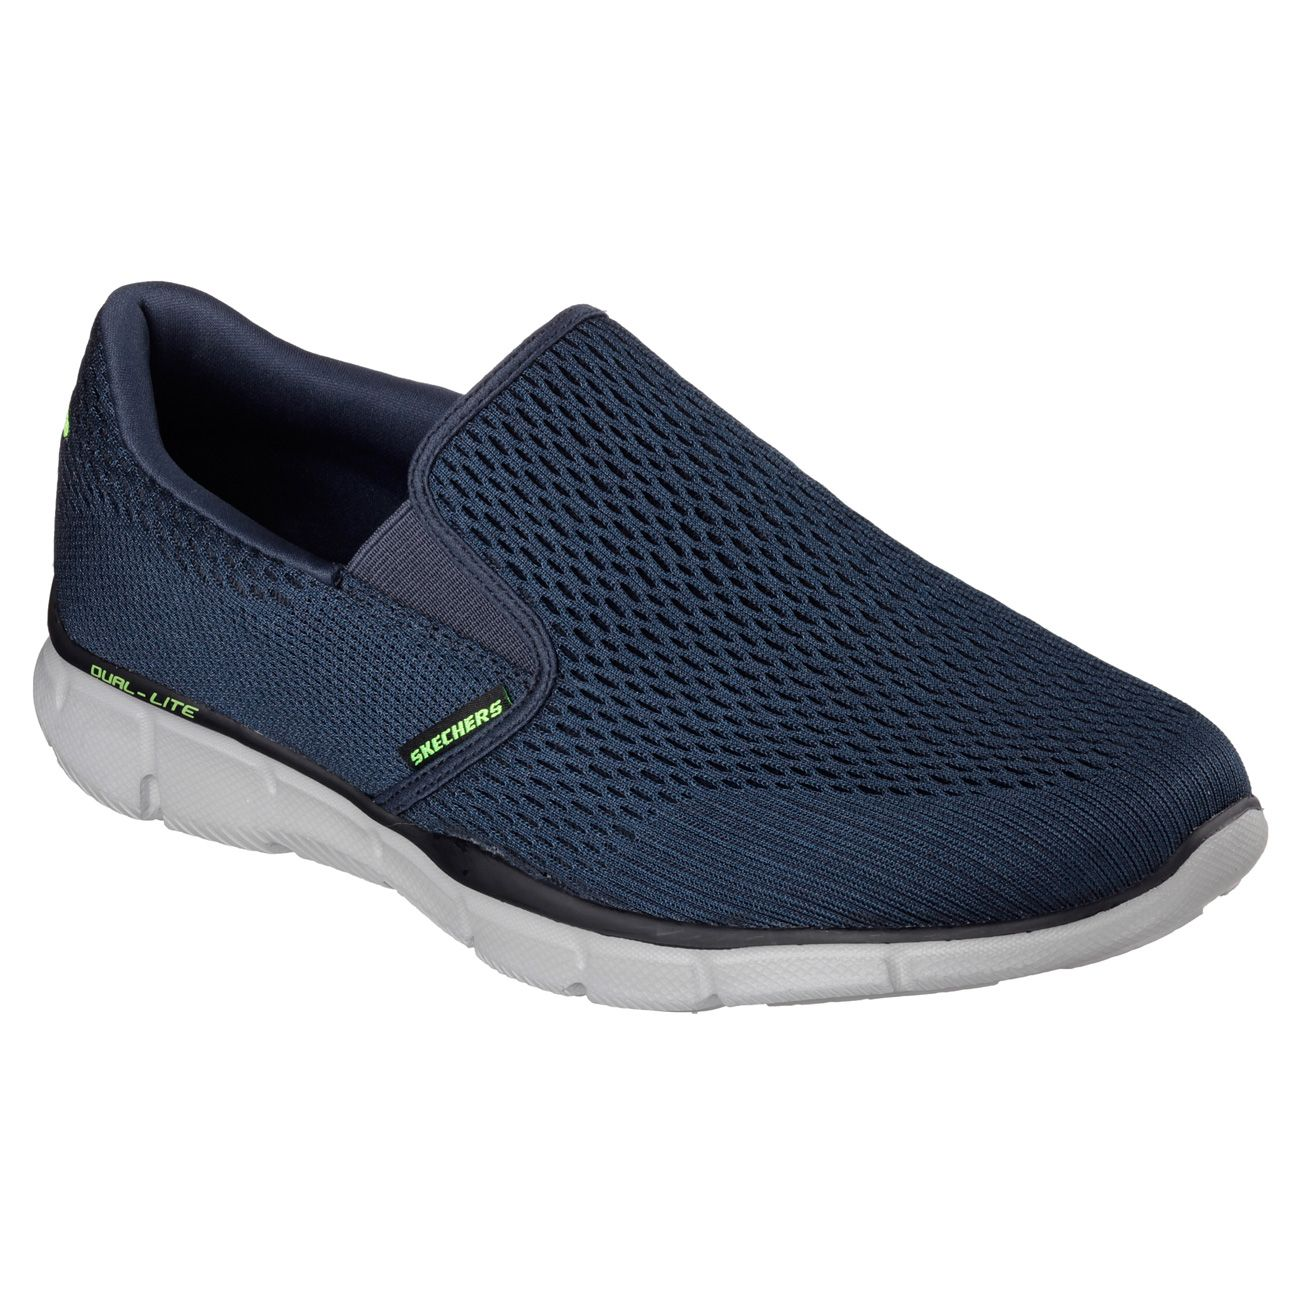 Walking Shoes To Keep Feet Cool